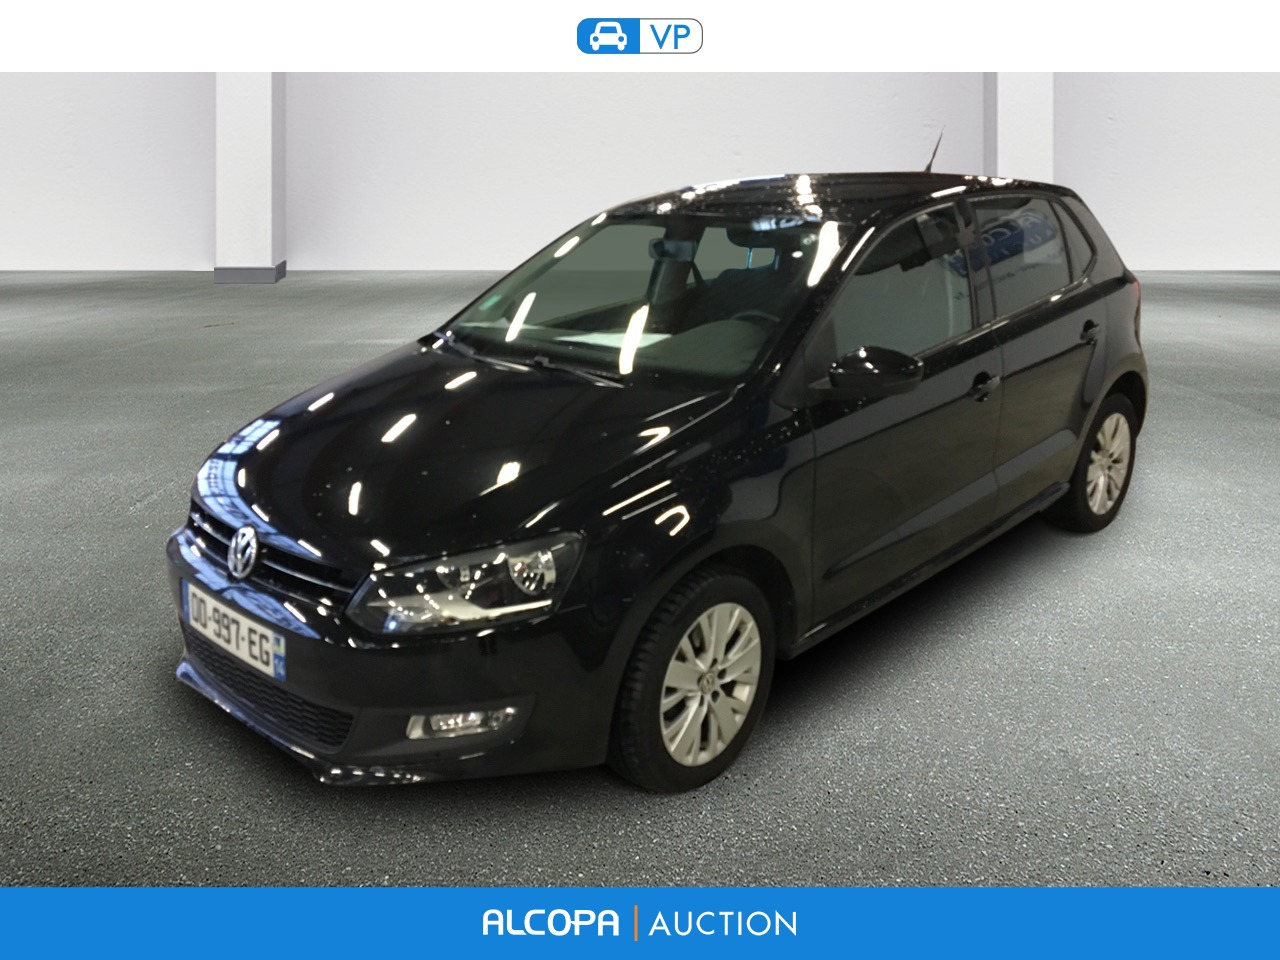 volkswagen polo 1 6 tdi 90 fap alcopa auction. Black Bedroom Furniture Sets. Home Design Ideas